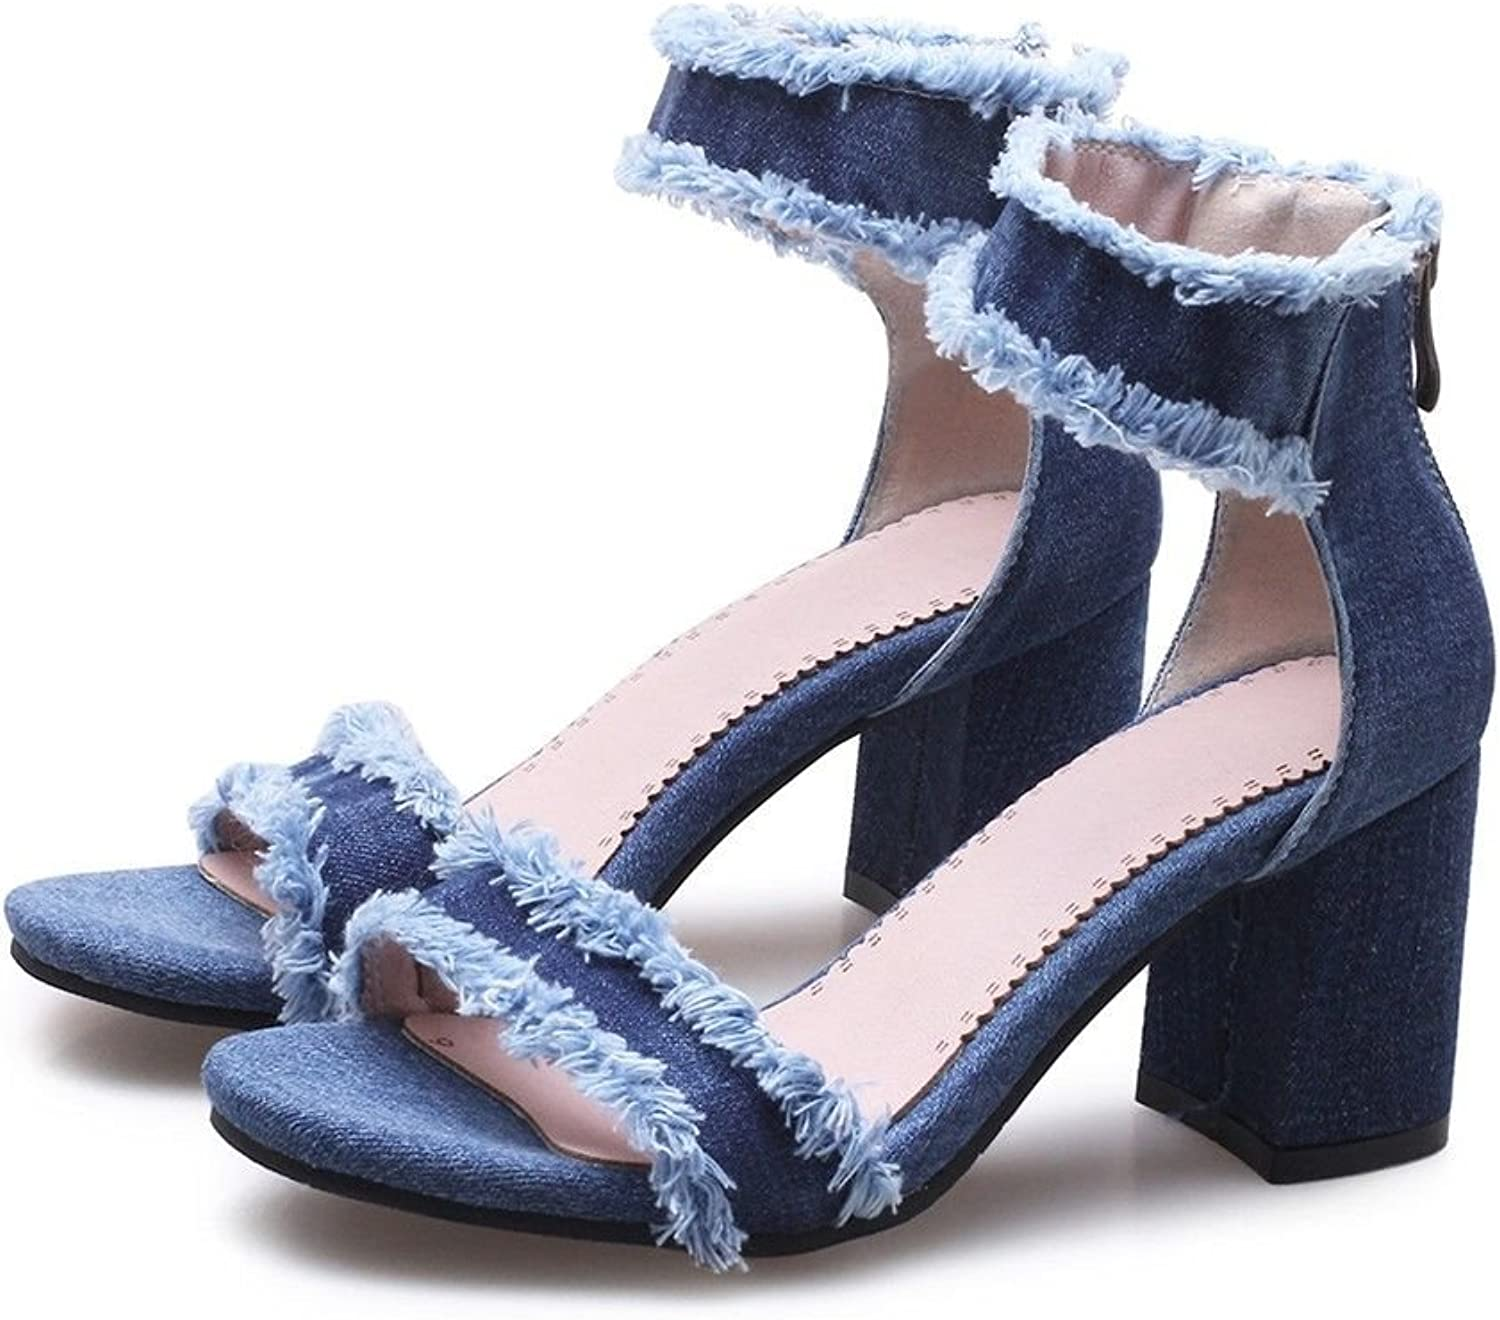 The Word Denim Ankle Straps Thick with high-Heeled, and Versatile Sandals